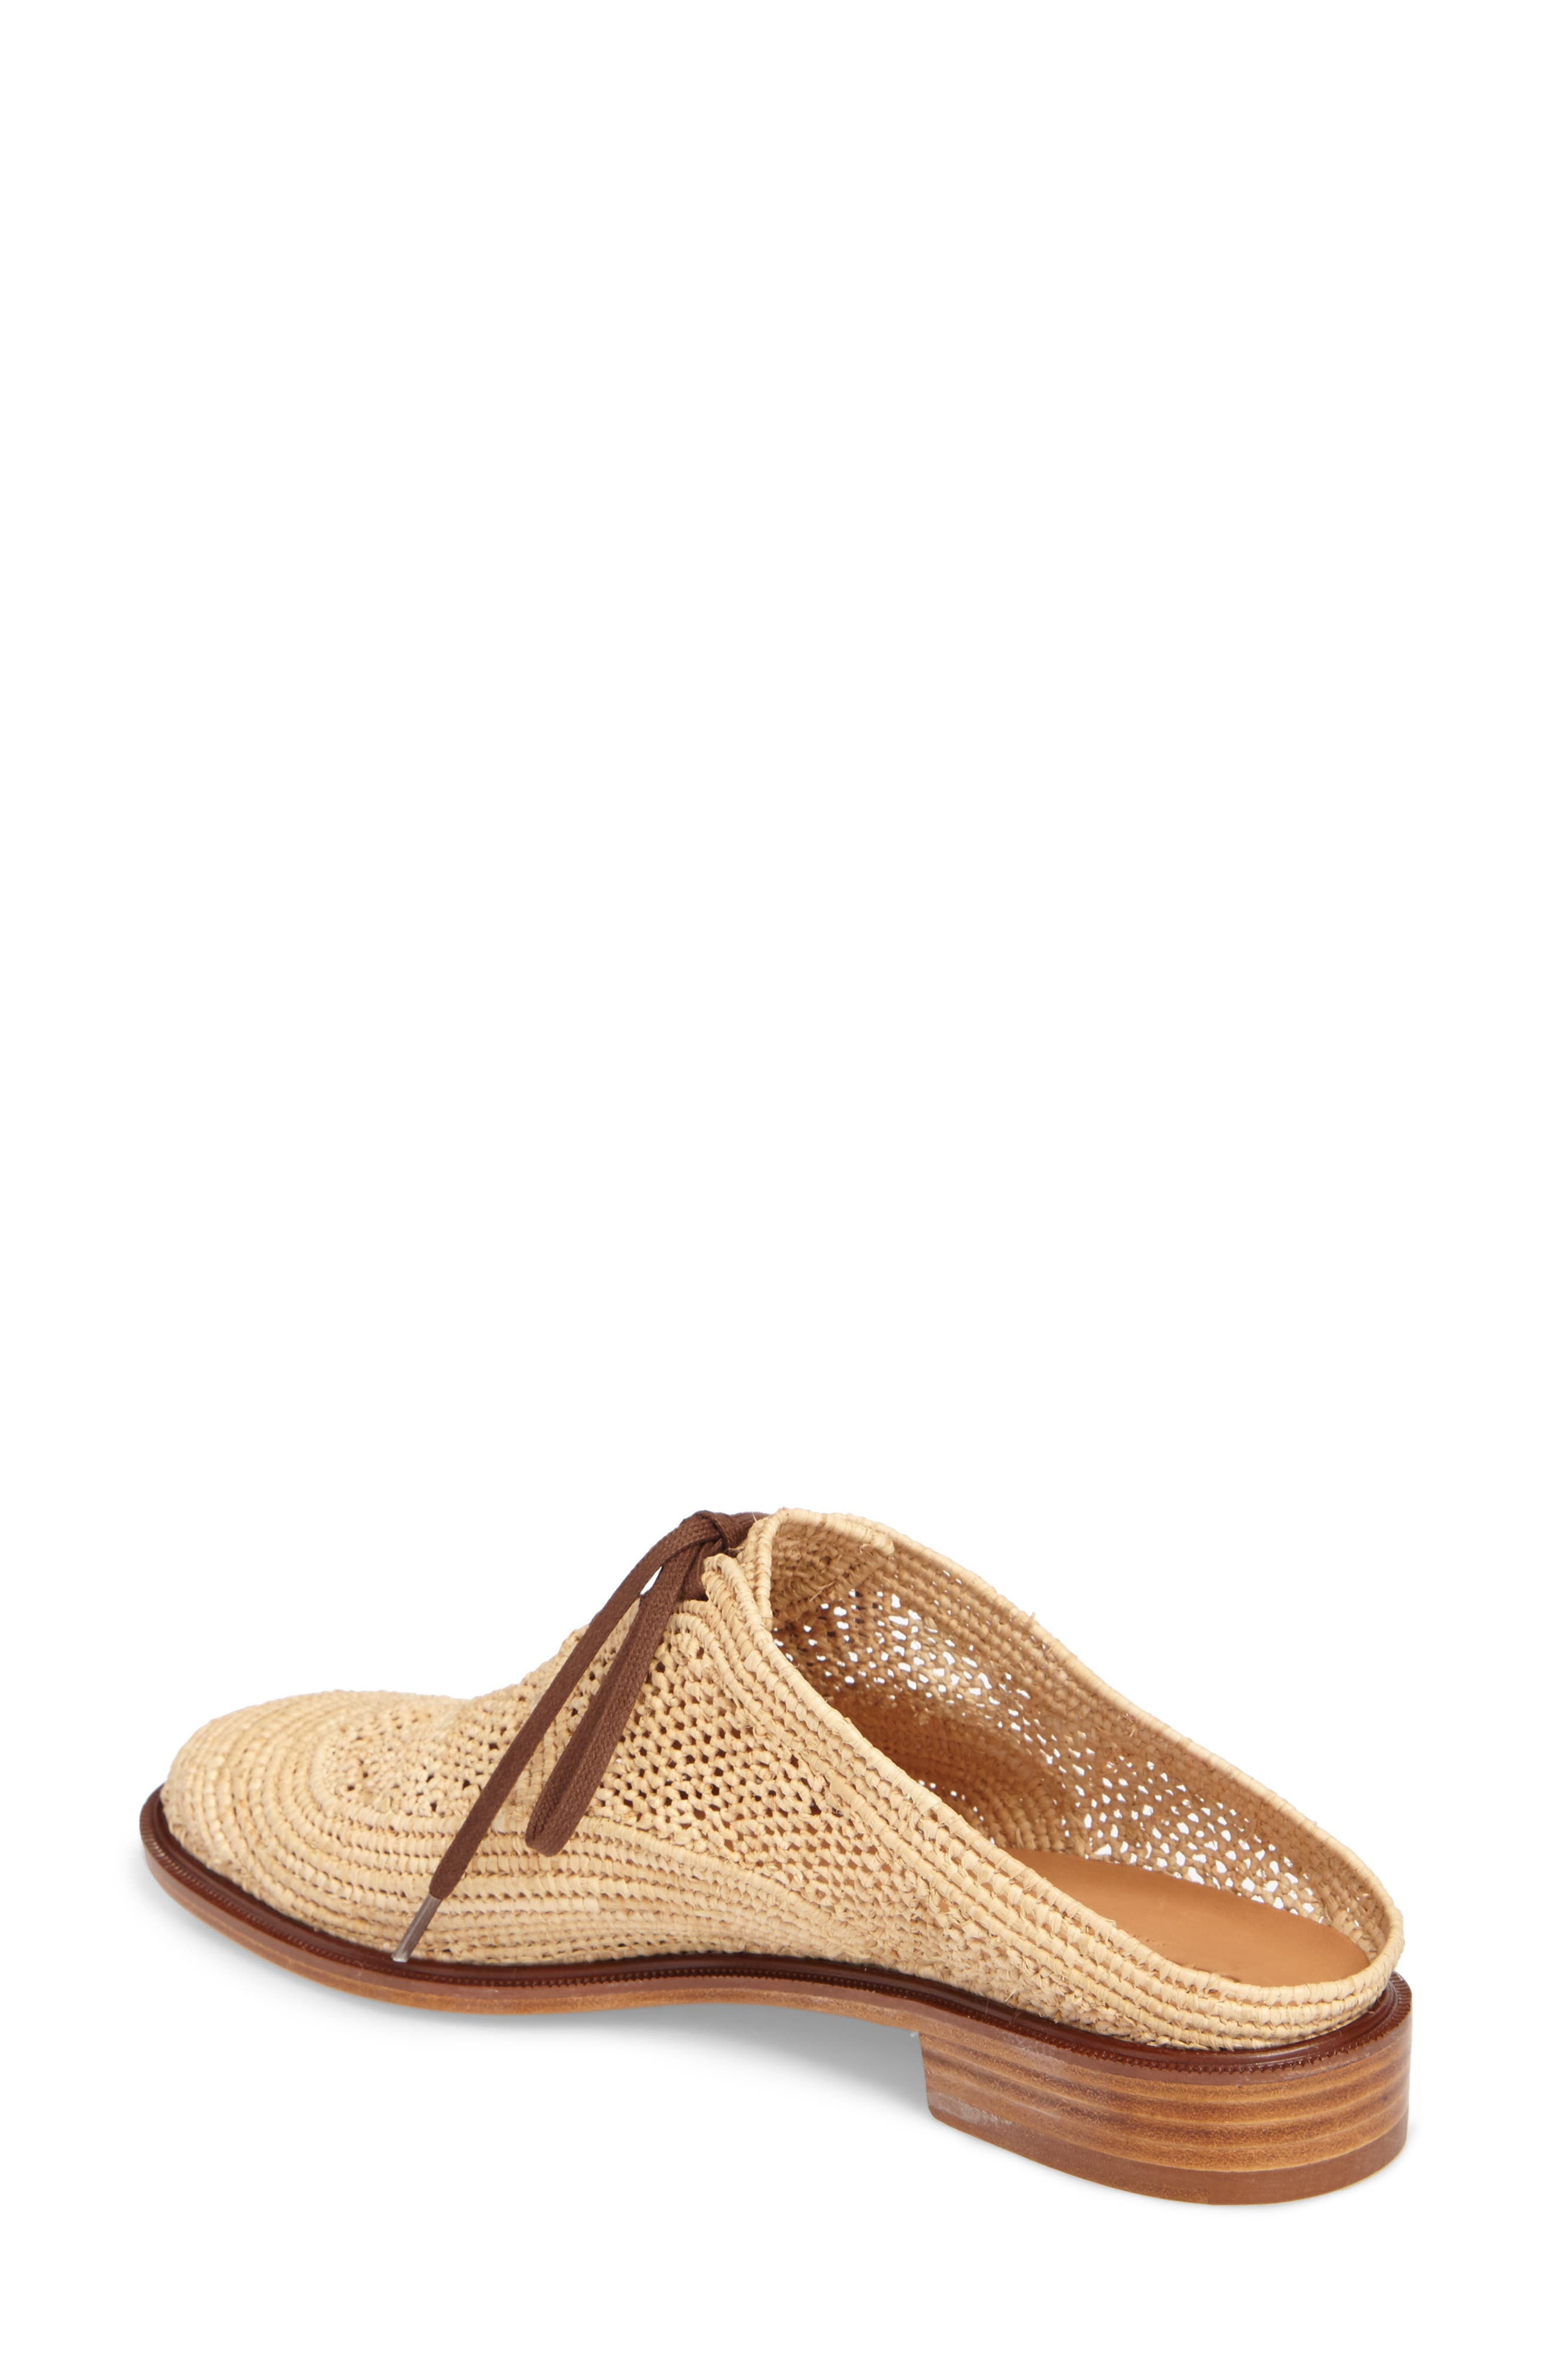 Jaly Woven Loafer Mule,                             Alternate thumbnail 2, color,                             250